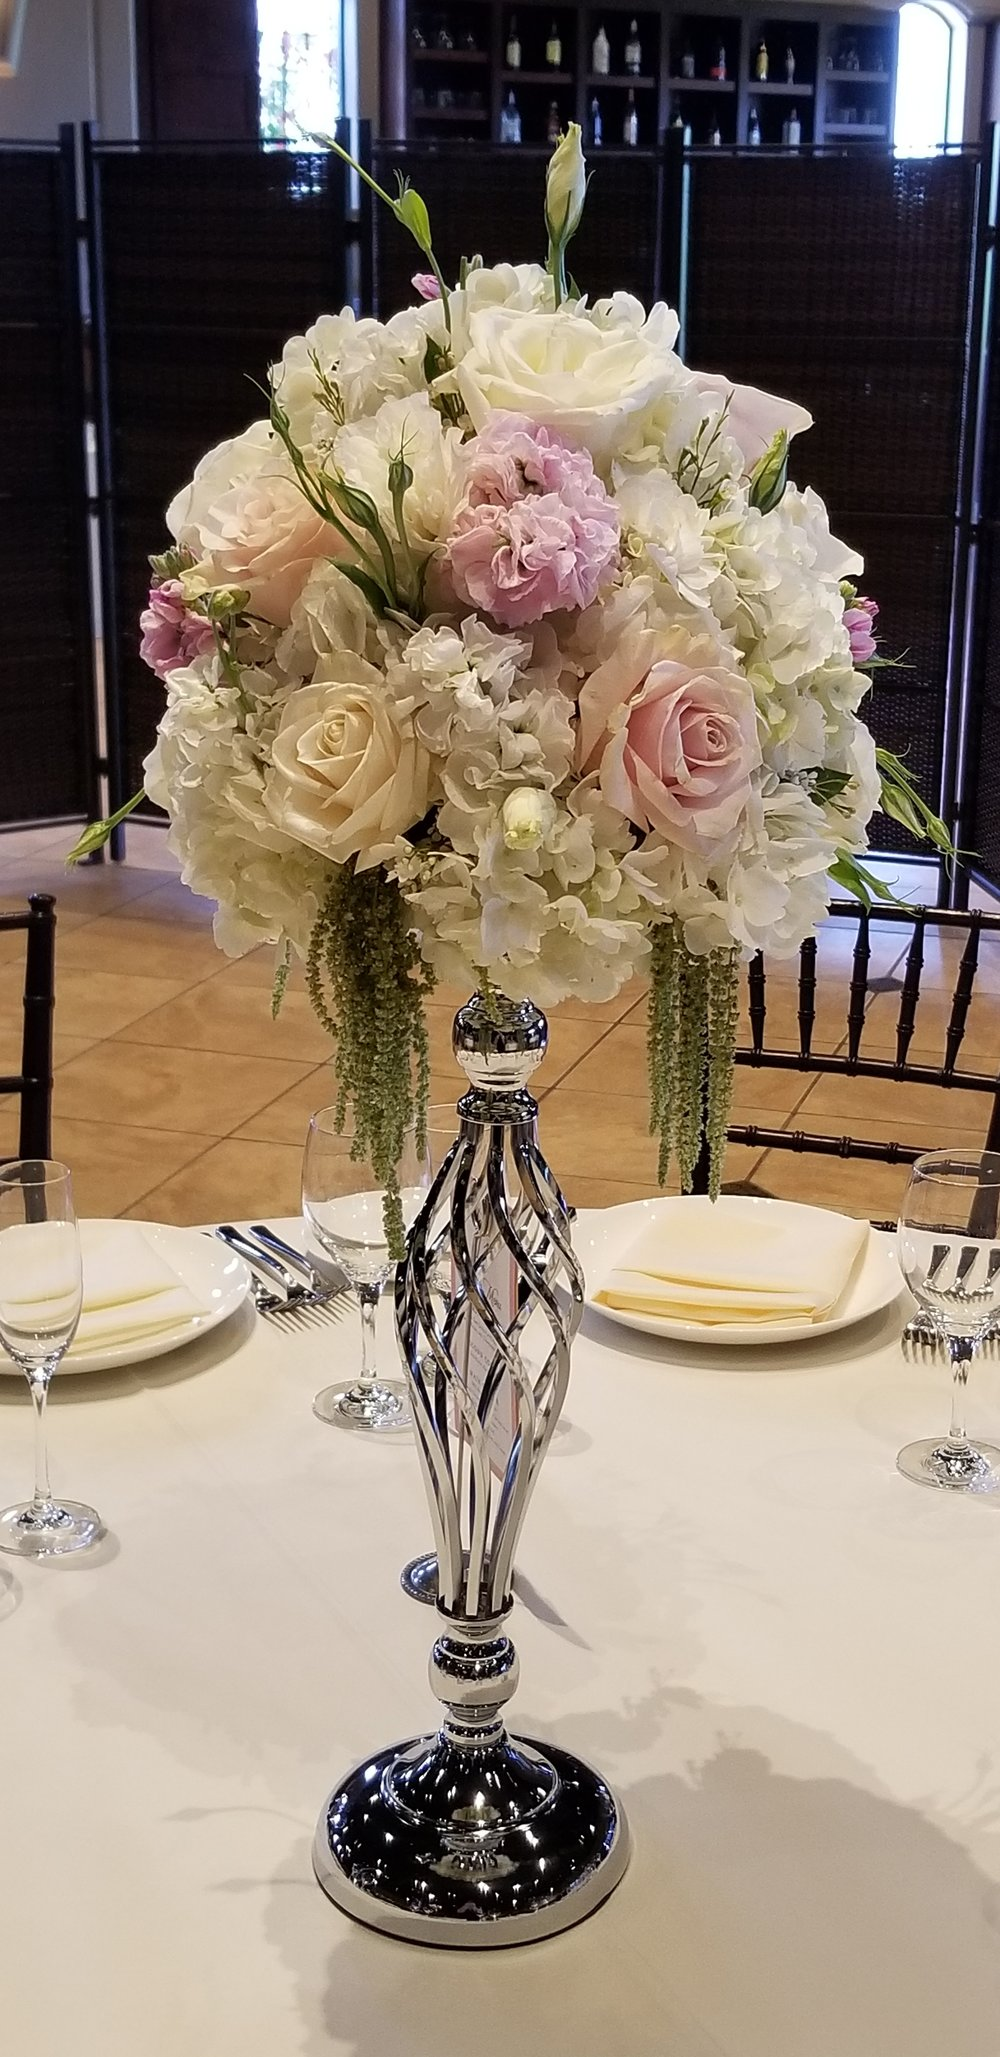 Reception centerpiece, tall and romantic silver riser with a spray of romantic blush, white and pink flowers. Palm Event Center wedding reception flowers.